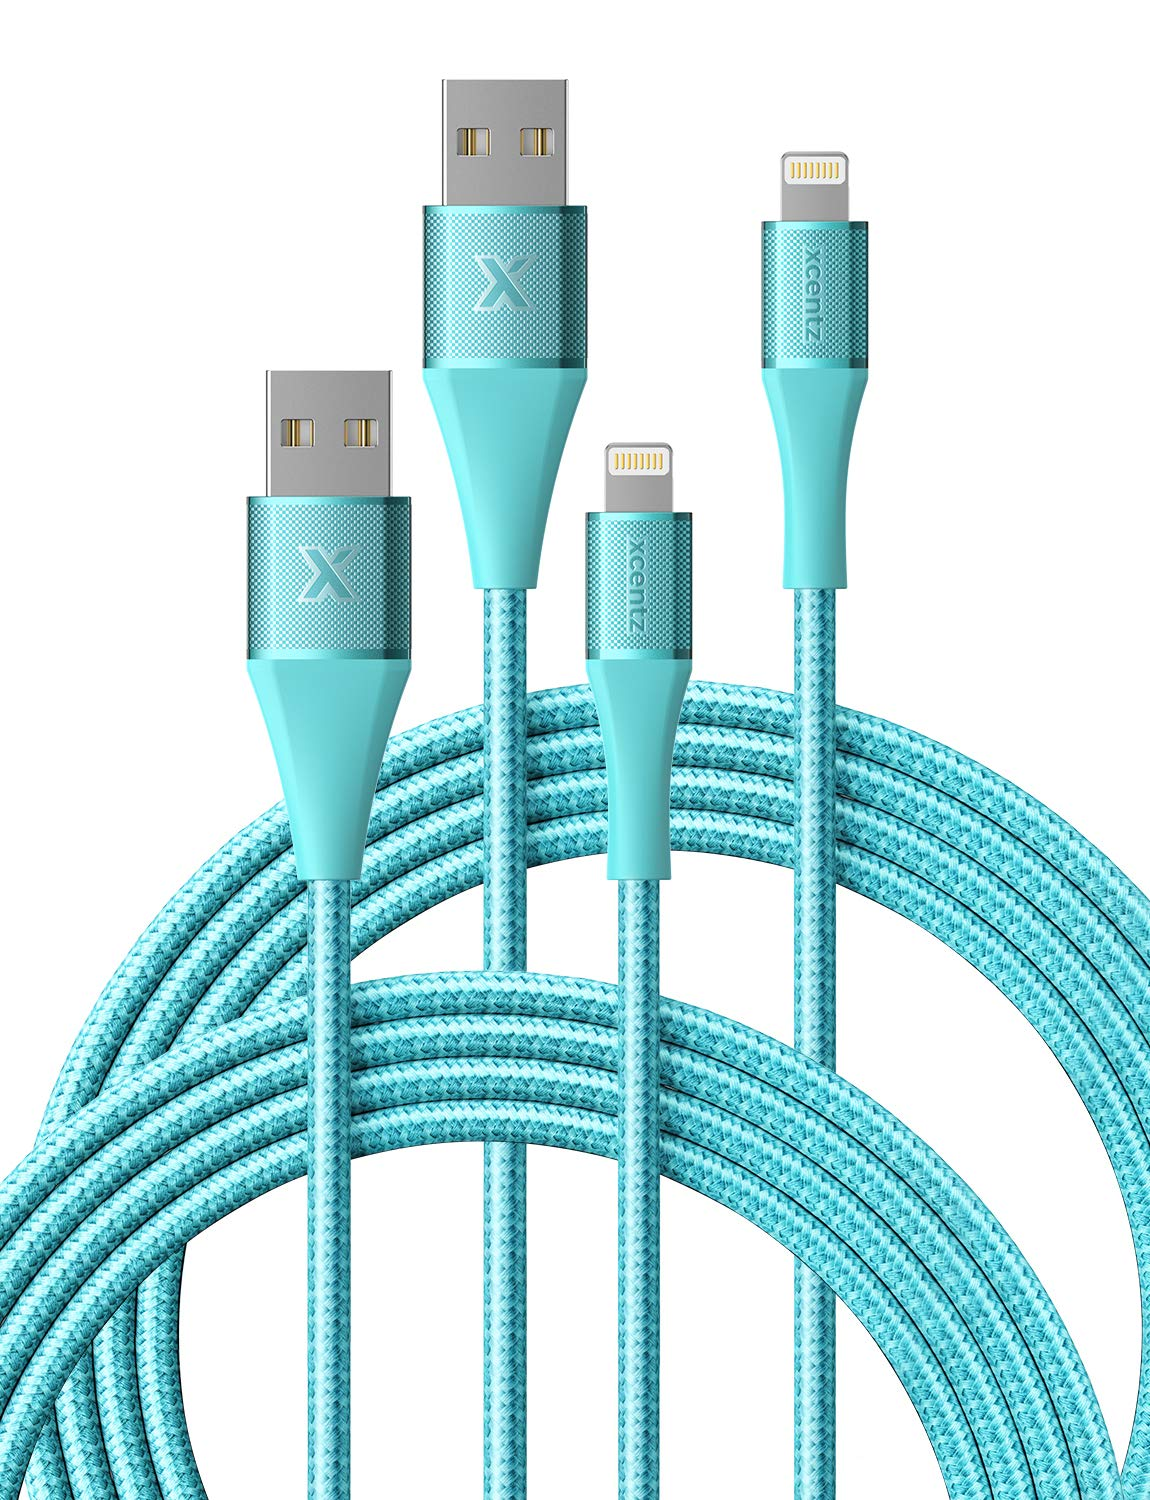 Xcentz iPhone Charger, (2 Pack, 6ft) Apple MFi Certified Lightning Cable High-Speed Braided Nylon iPhone Cable Premium Metal Connector for iPhone X/XS/XR/XS Max/8/7/6/5S/SE, iPad Pro/Mini/Air, Blue